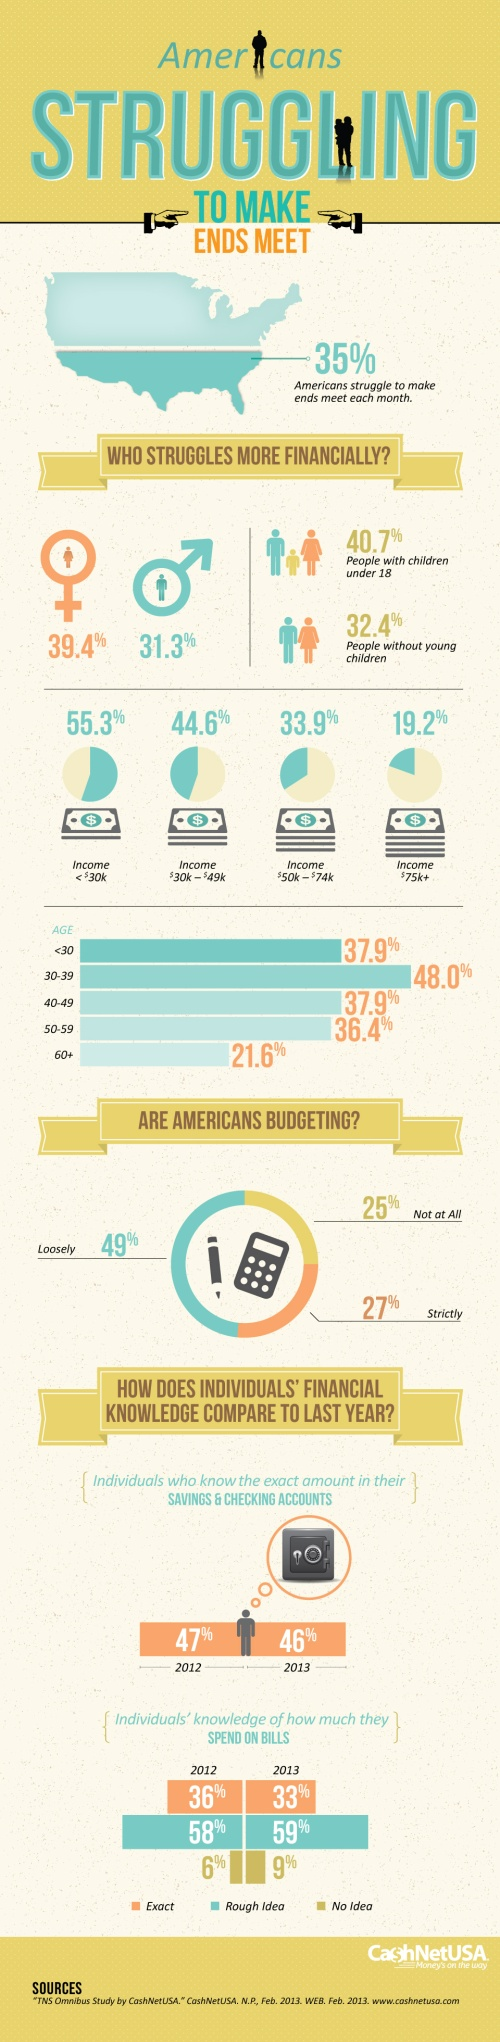 Americans-Struggling-to-Make-Ends-Meet-Infographic